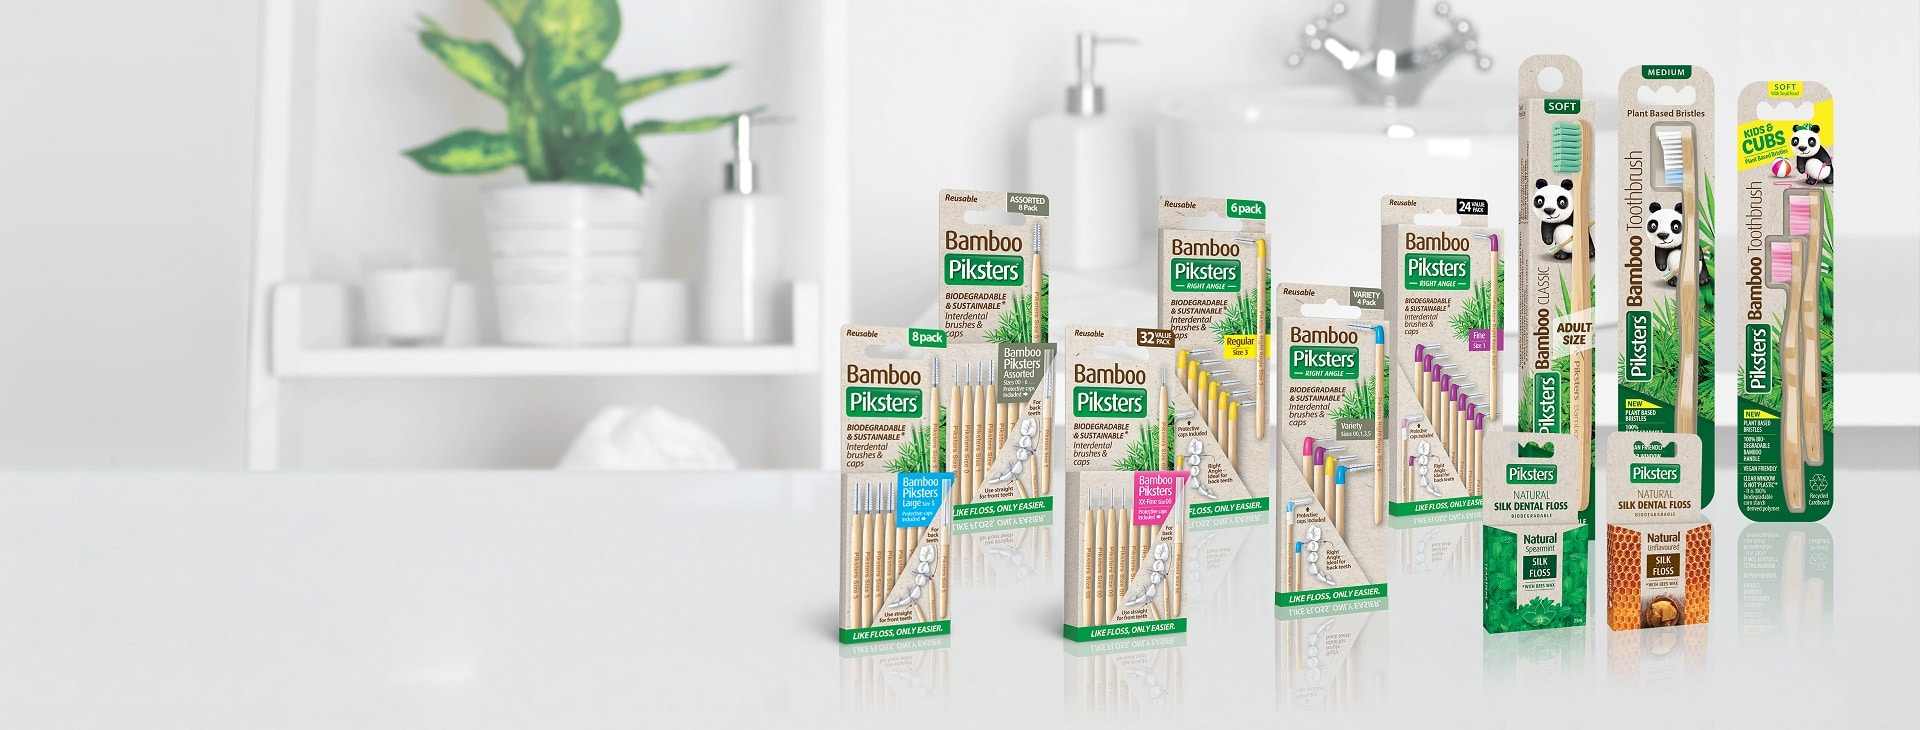 Piksters ECO Bamboo Products